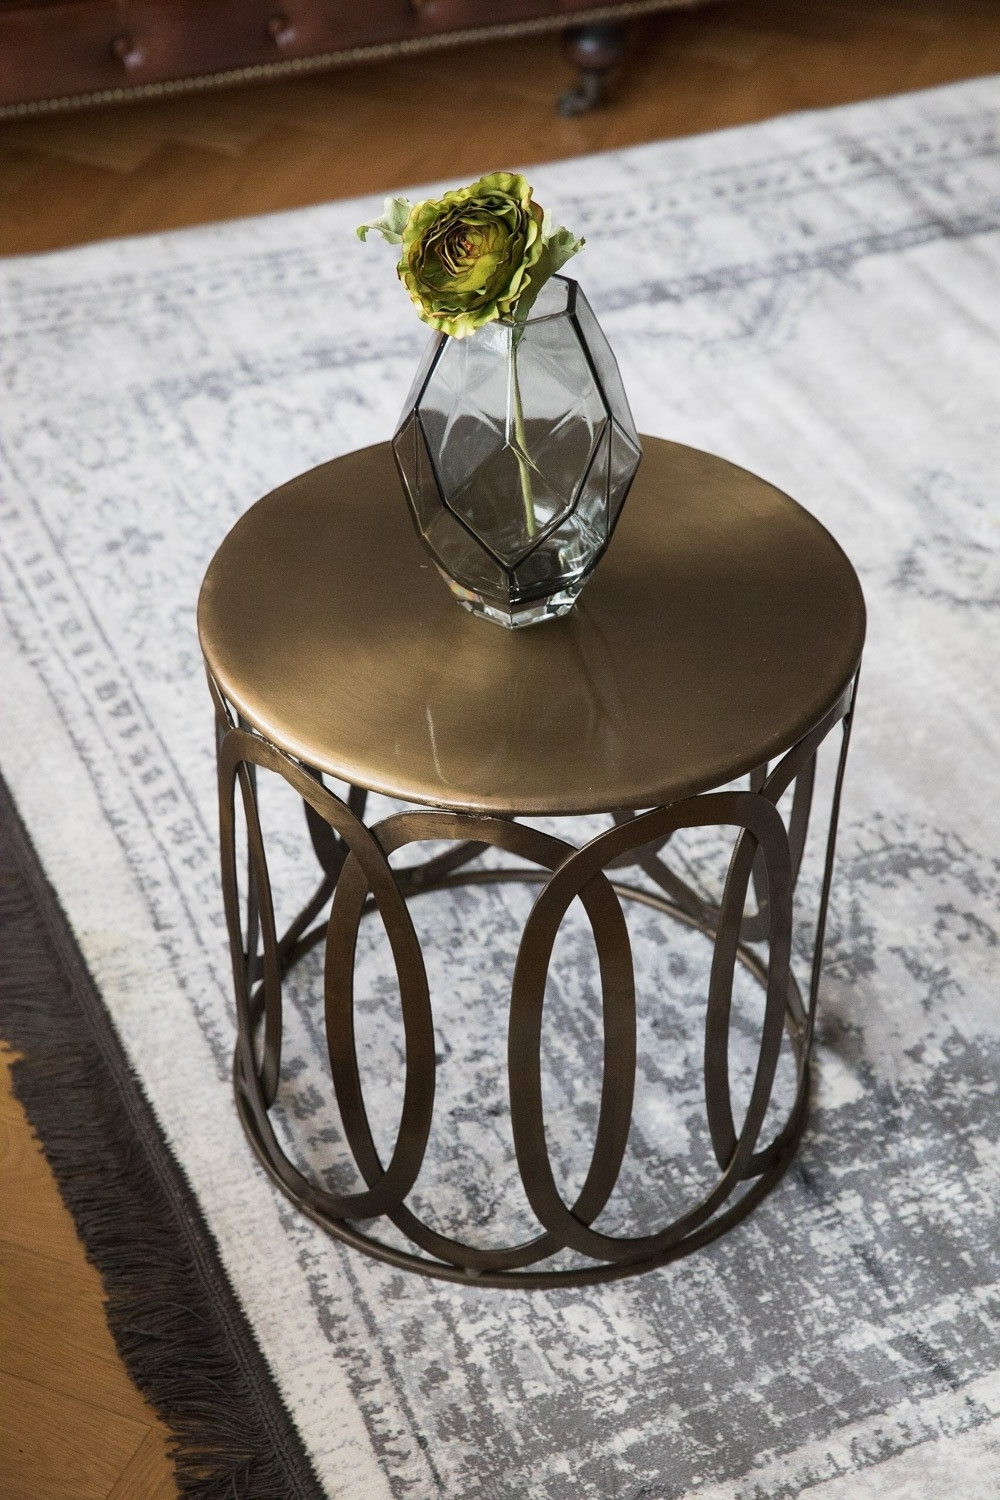 Brass Drum Coffee Table Antique Brass Drum Coffee Table Inside Popular Darbuka Brass Coffee Tables (View 4 of 20)